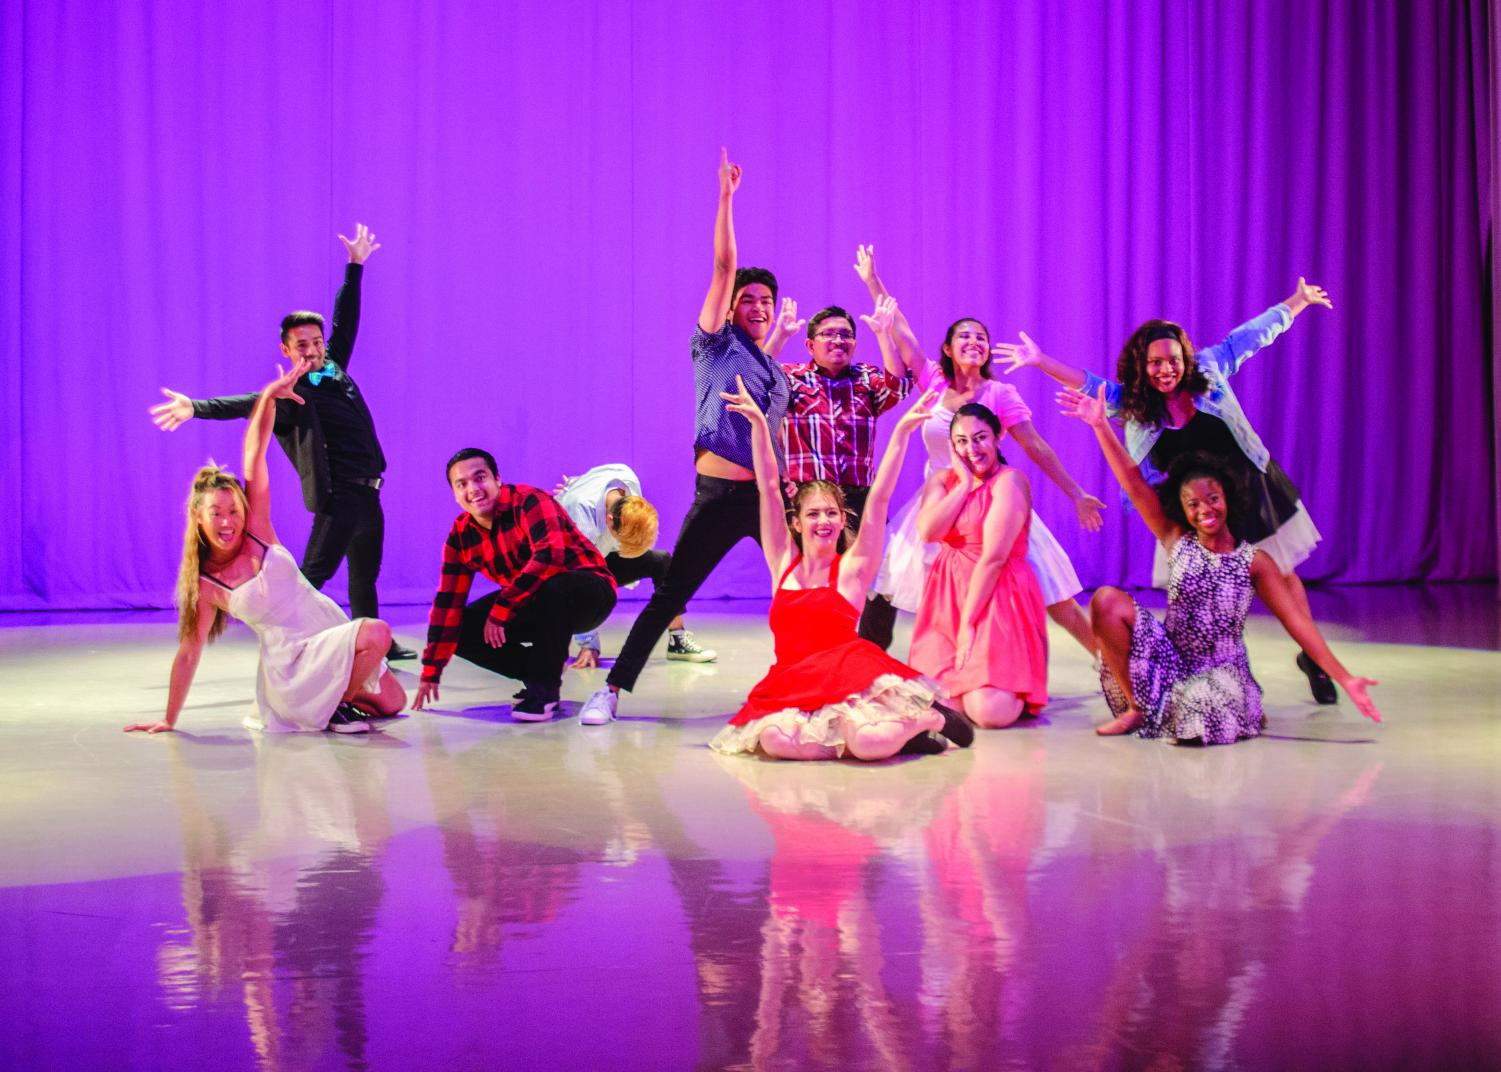 GCC's Dance Club members receive the audience's applause in their final pose.